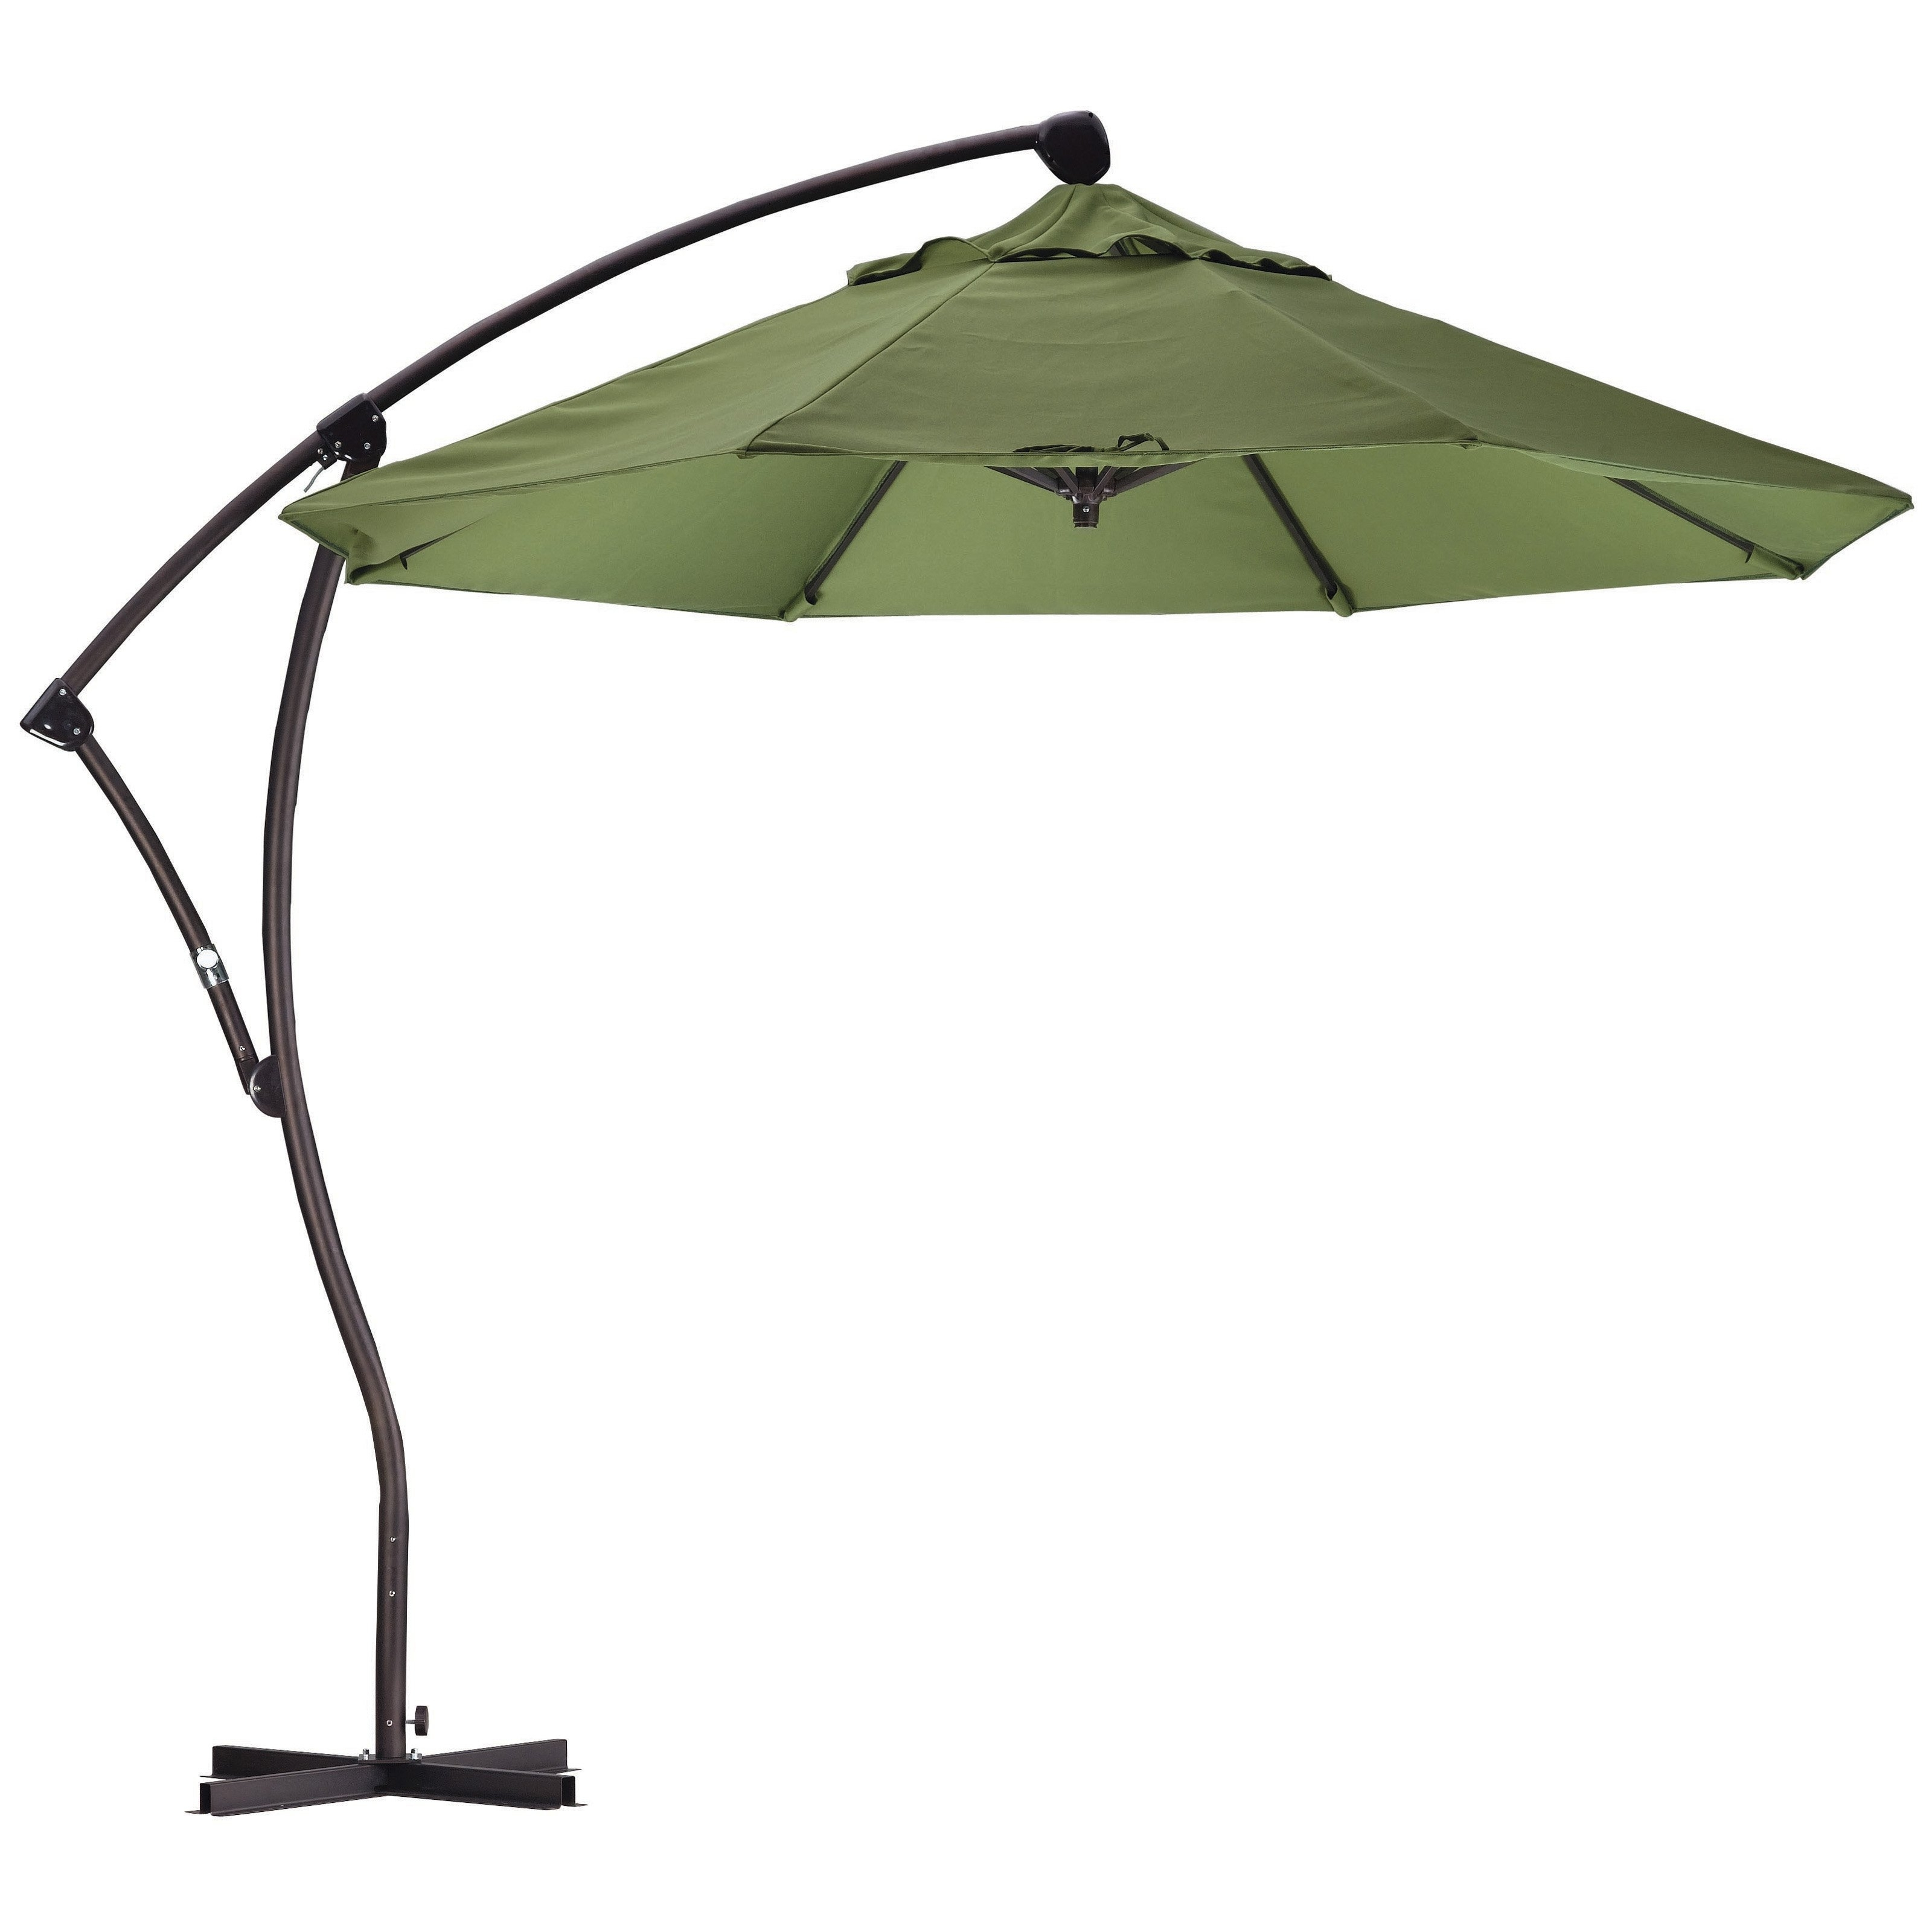 Free Standing Patio Umbrellas With Regard To Most Popular Cute Offset Patio Umbrella Canvas Aluminum Mezzo Mg Offset Patio (View 8 of 20)